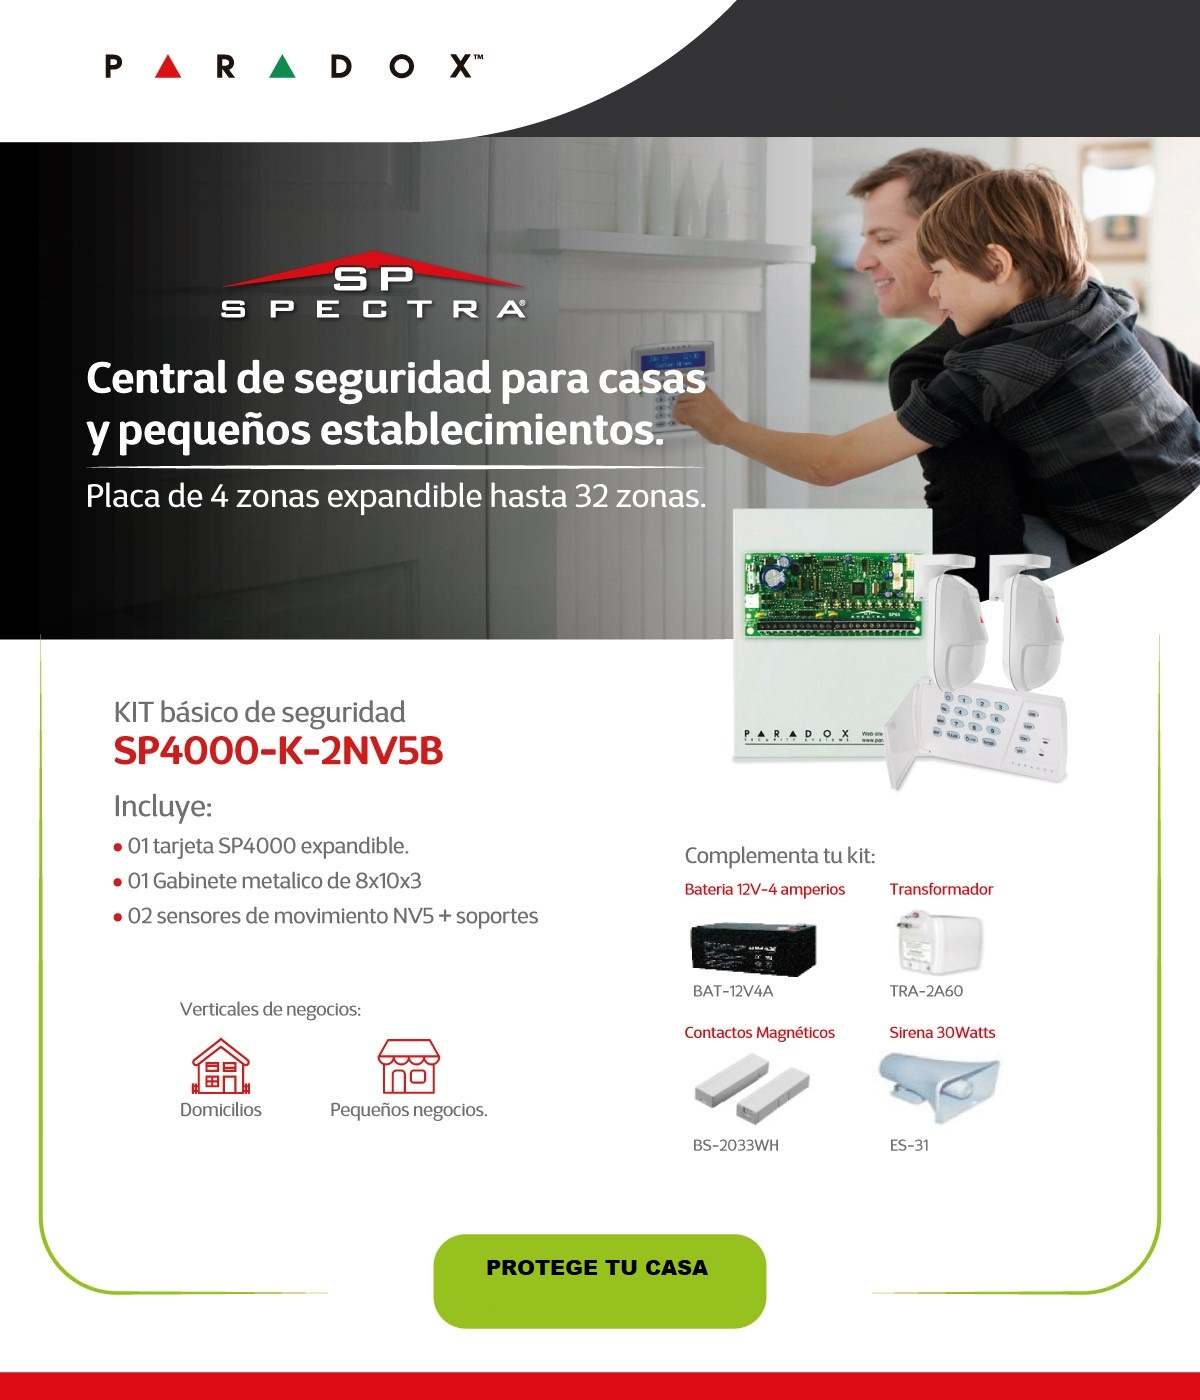 https://0201.nccdn.net/1_2/000/000/0e0/55f/KIT-BASICO-DE-SEGURIDAD-1200x1400.jpg